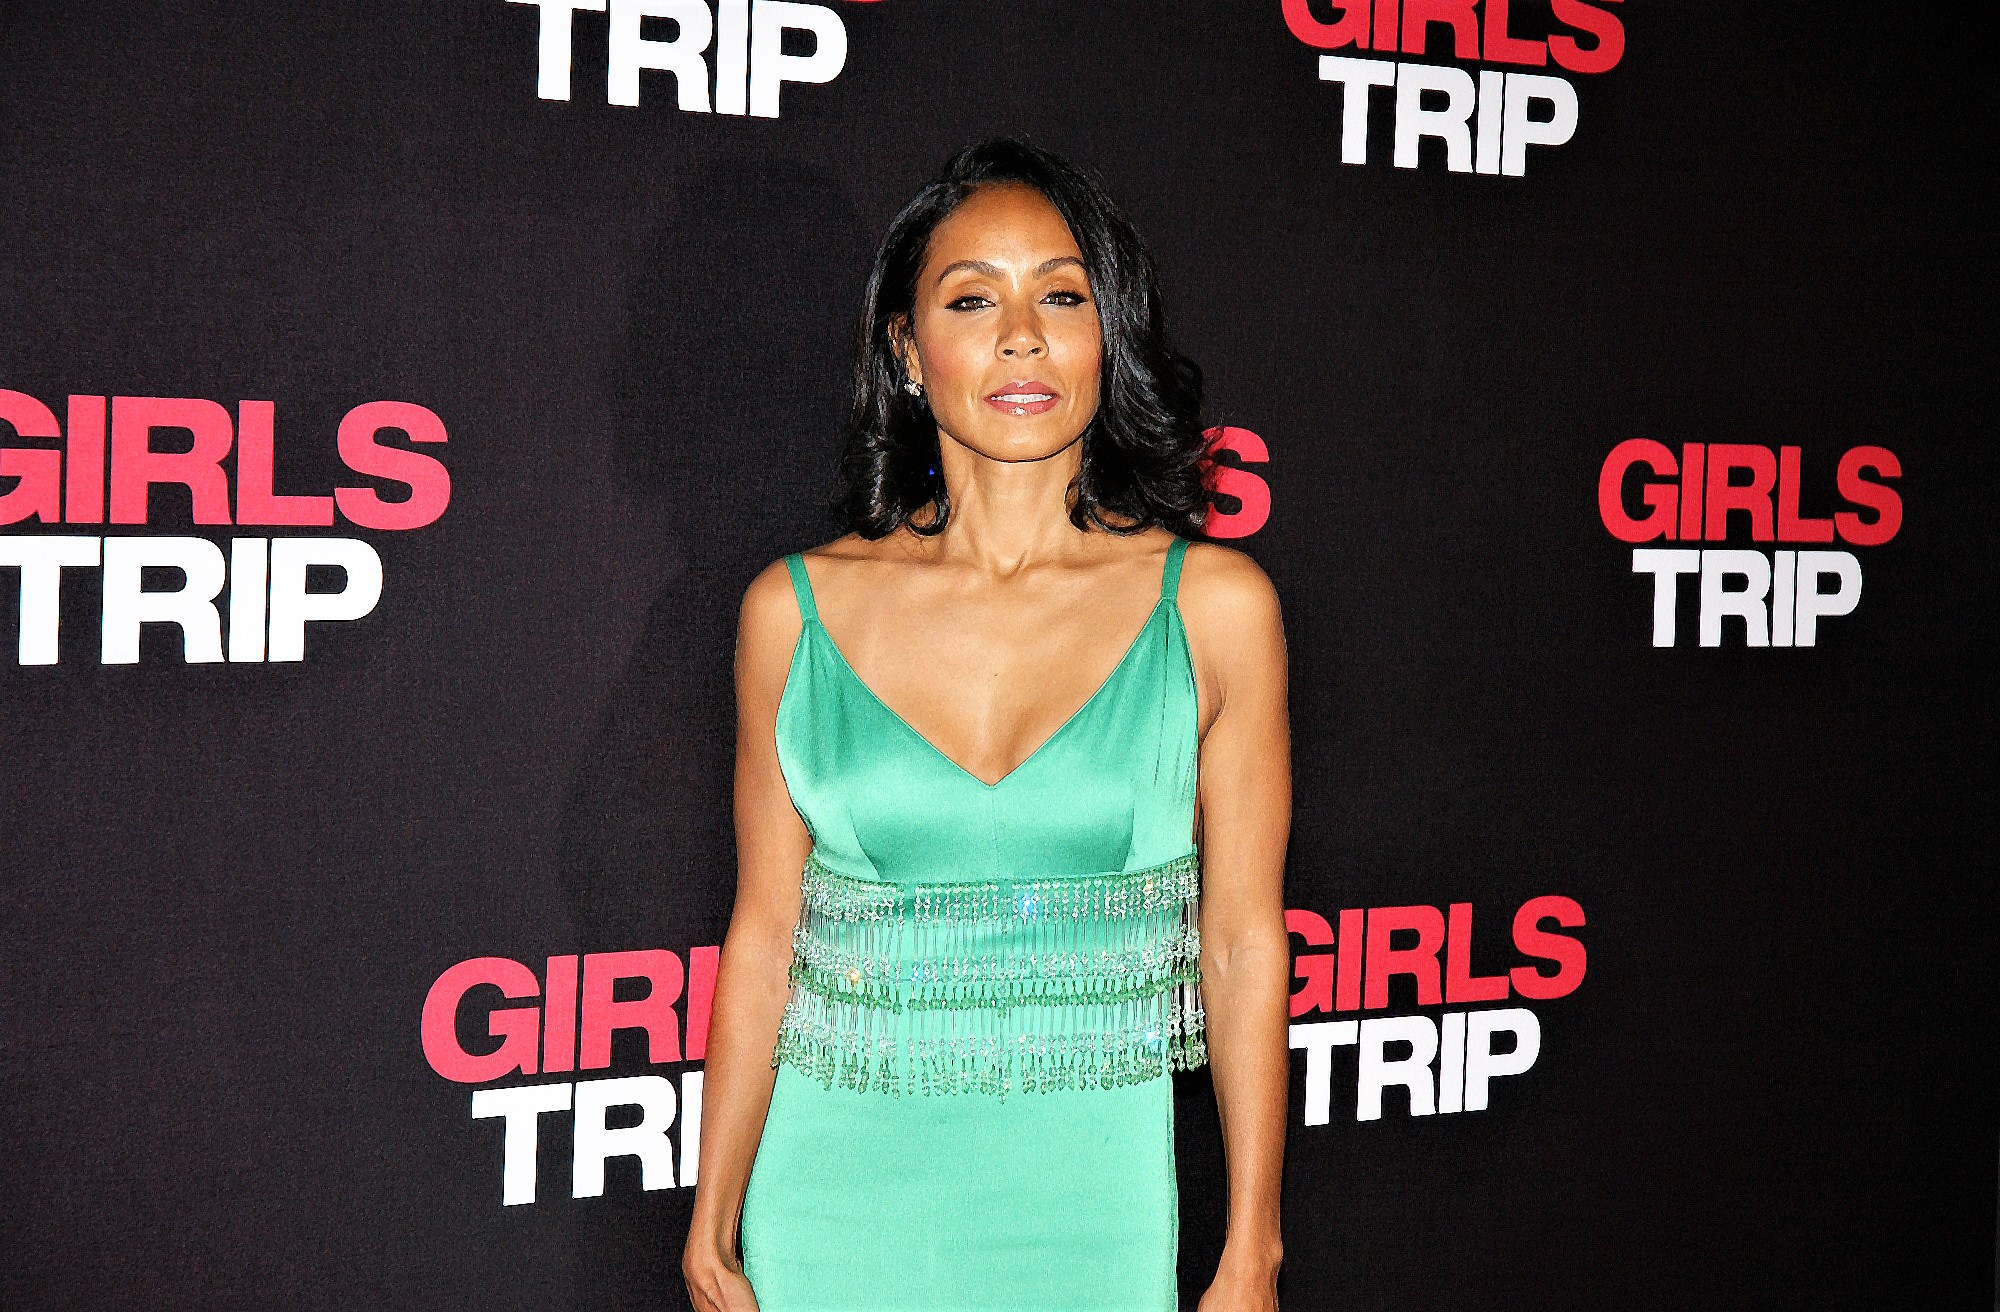 Jada Pinkett Smith Goes on Tirade Over 'Girls Trip' Awards Snub